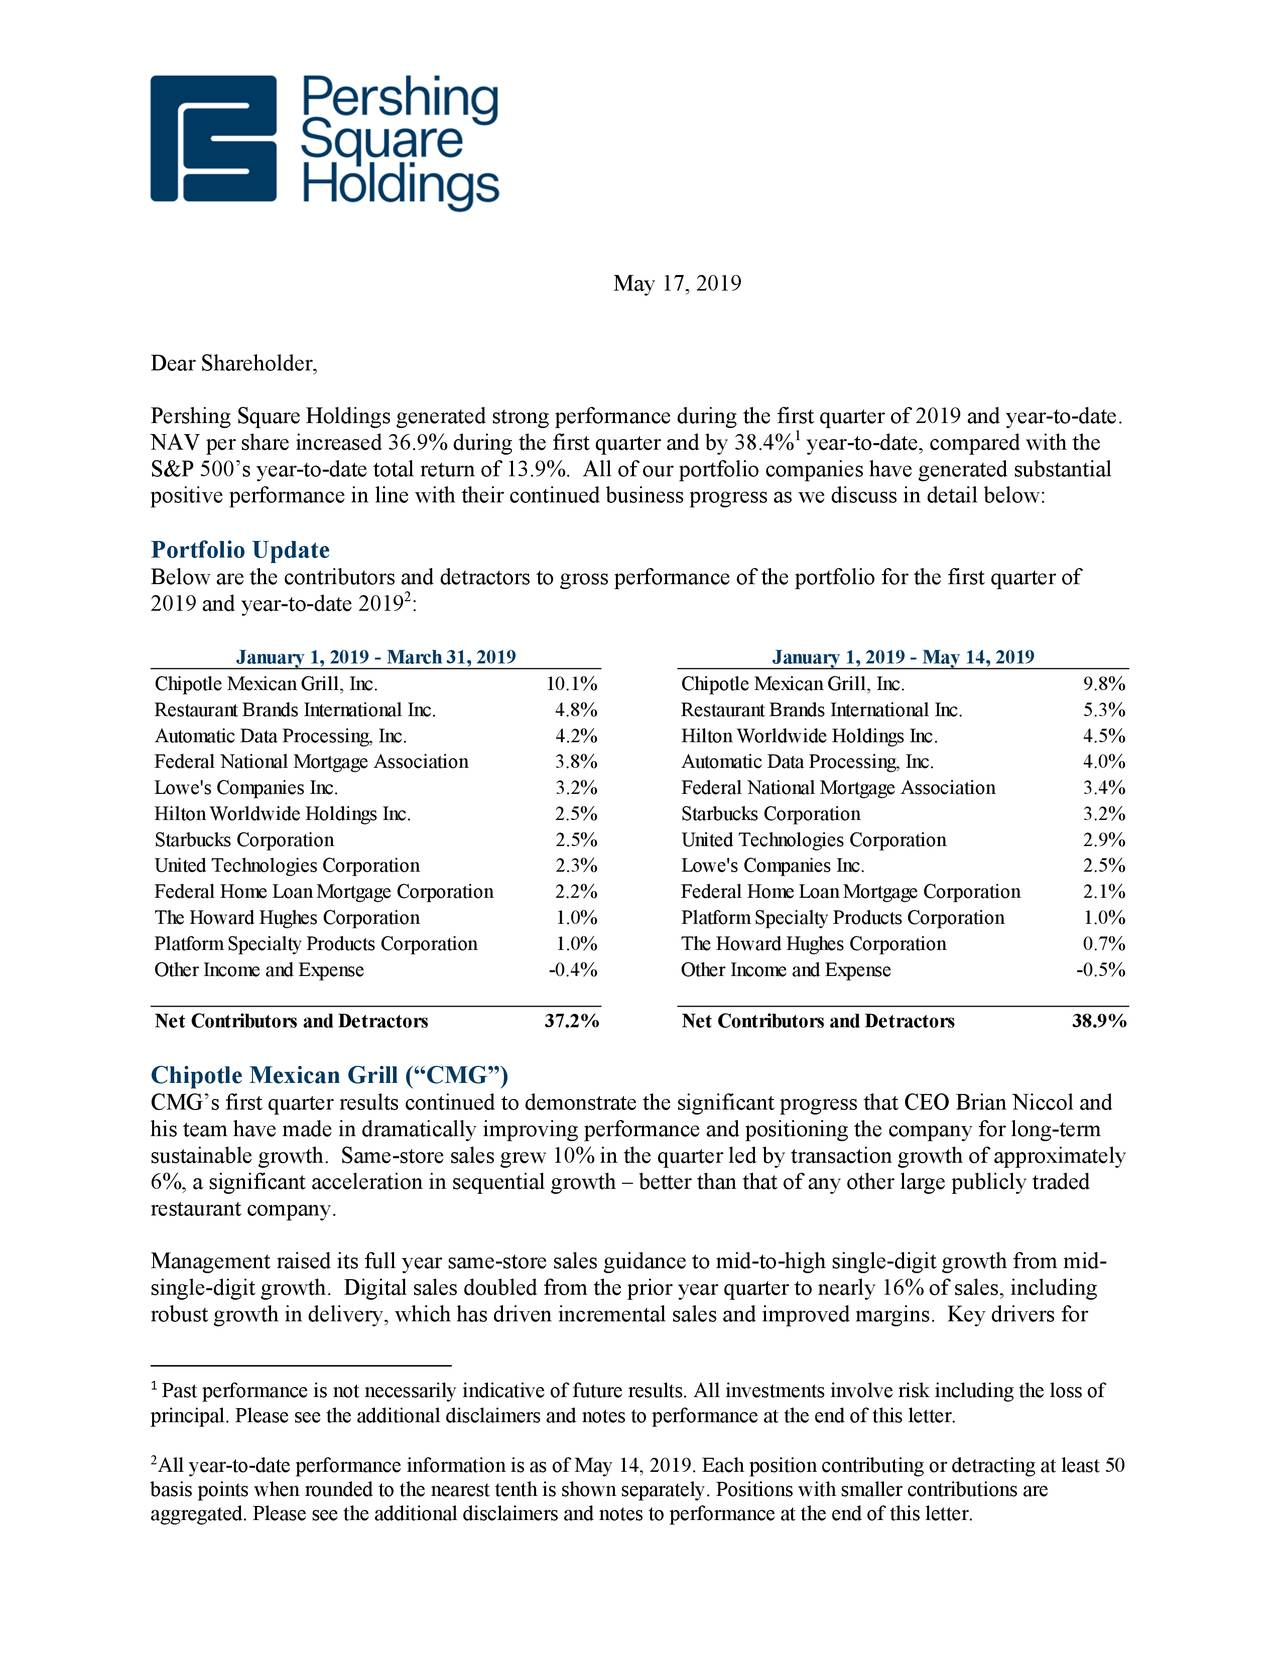 Pershing Square Holdings Q1 2019 Letter To Shareholders